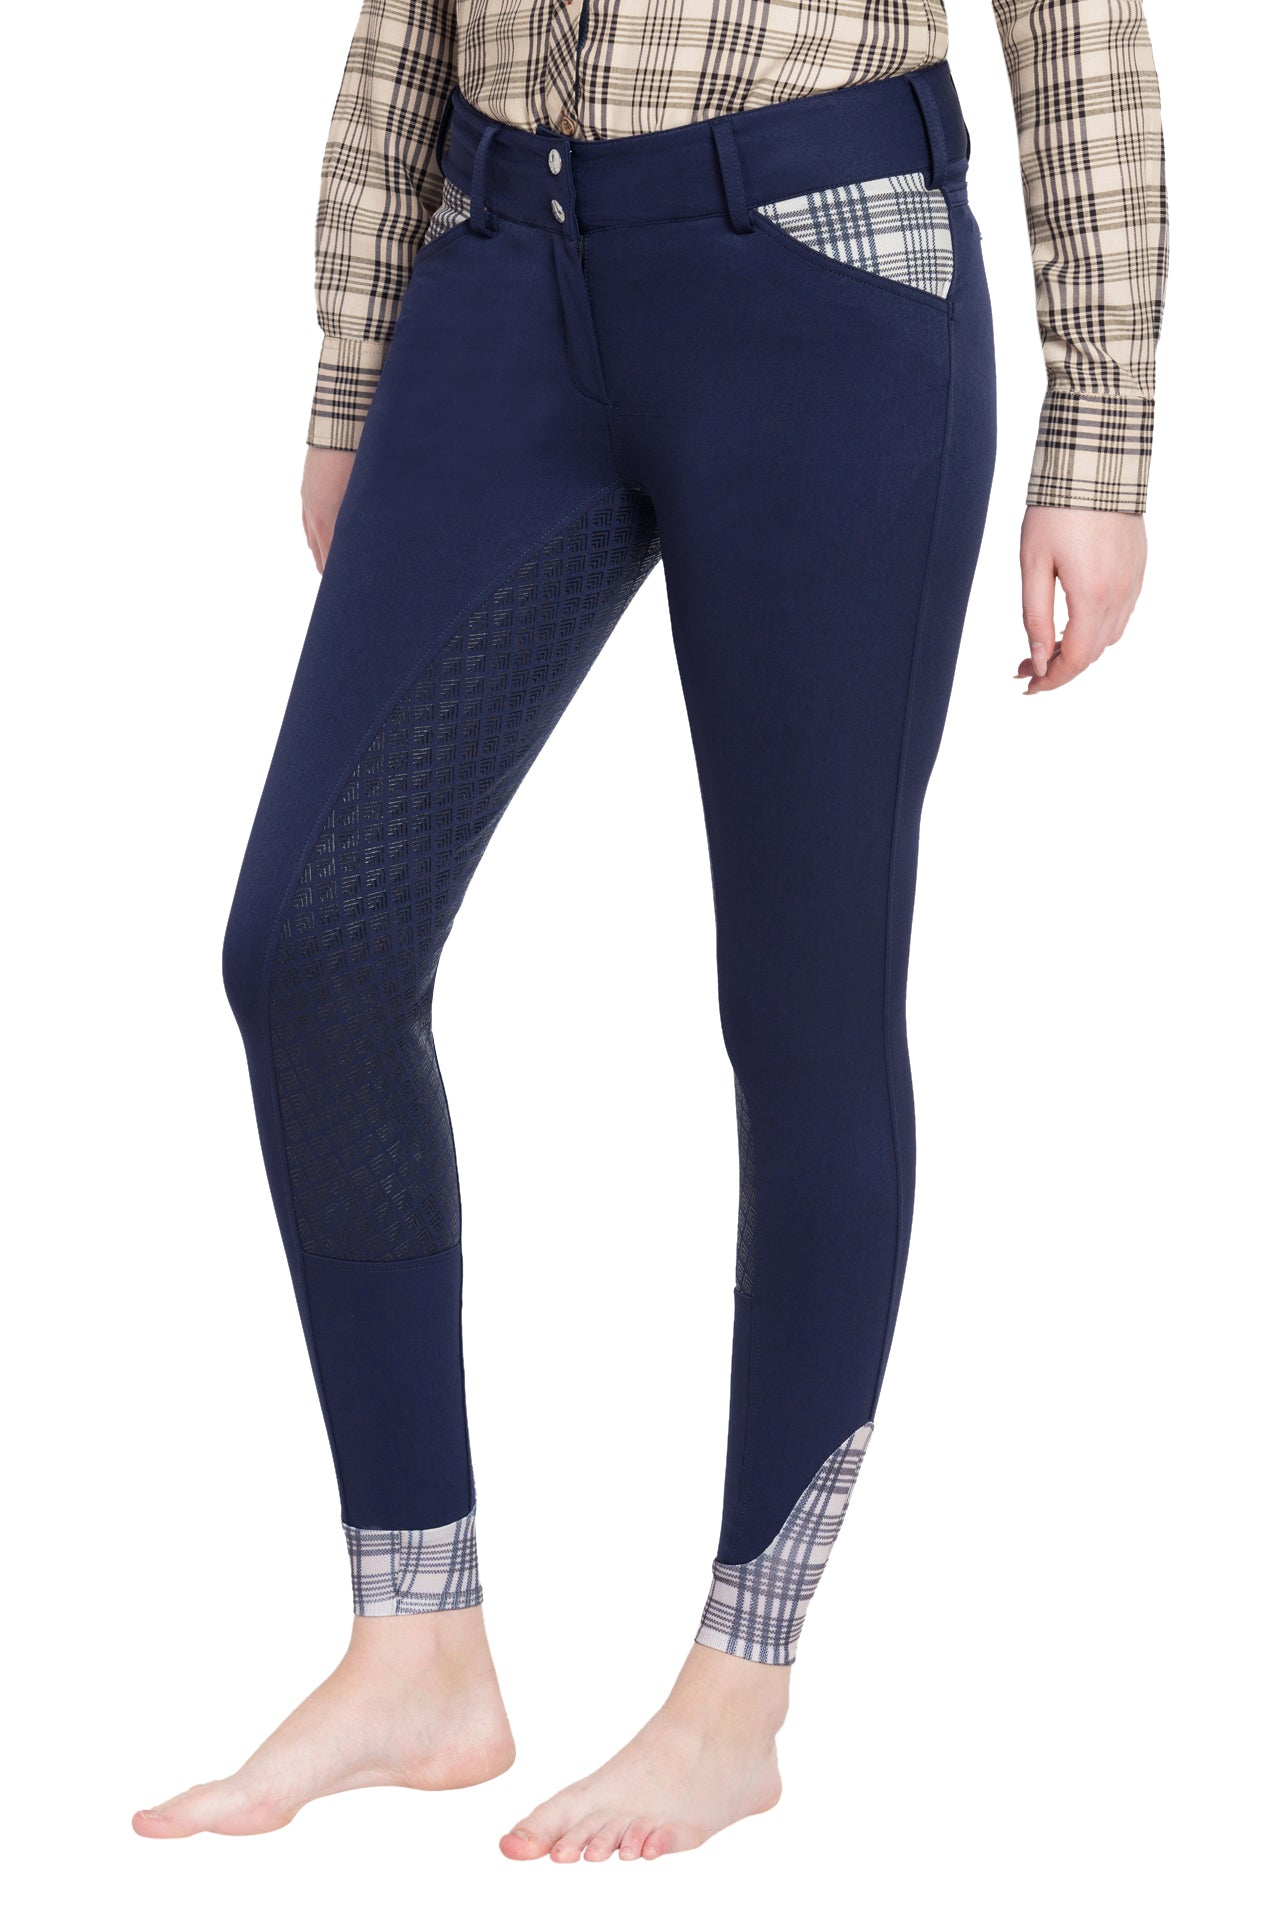 Baker Ladies Pro Silicone Full Seat Breeches - Baker - Breeches.com